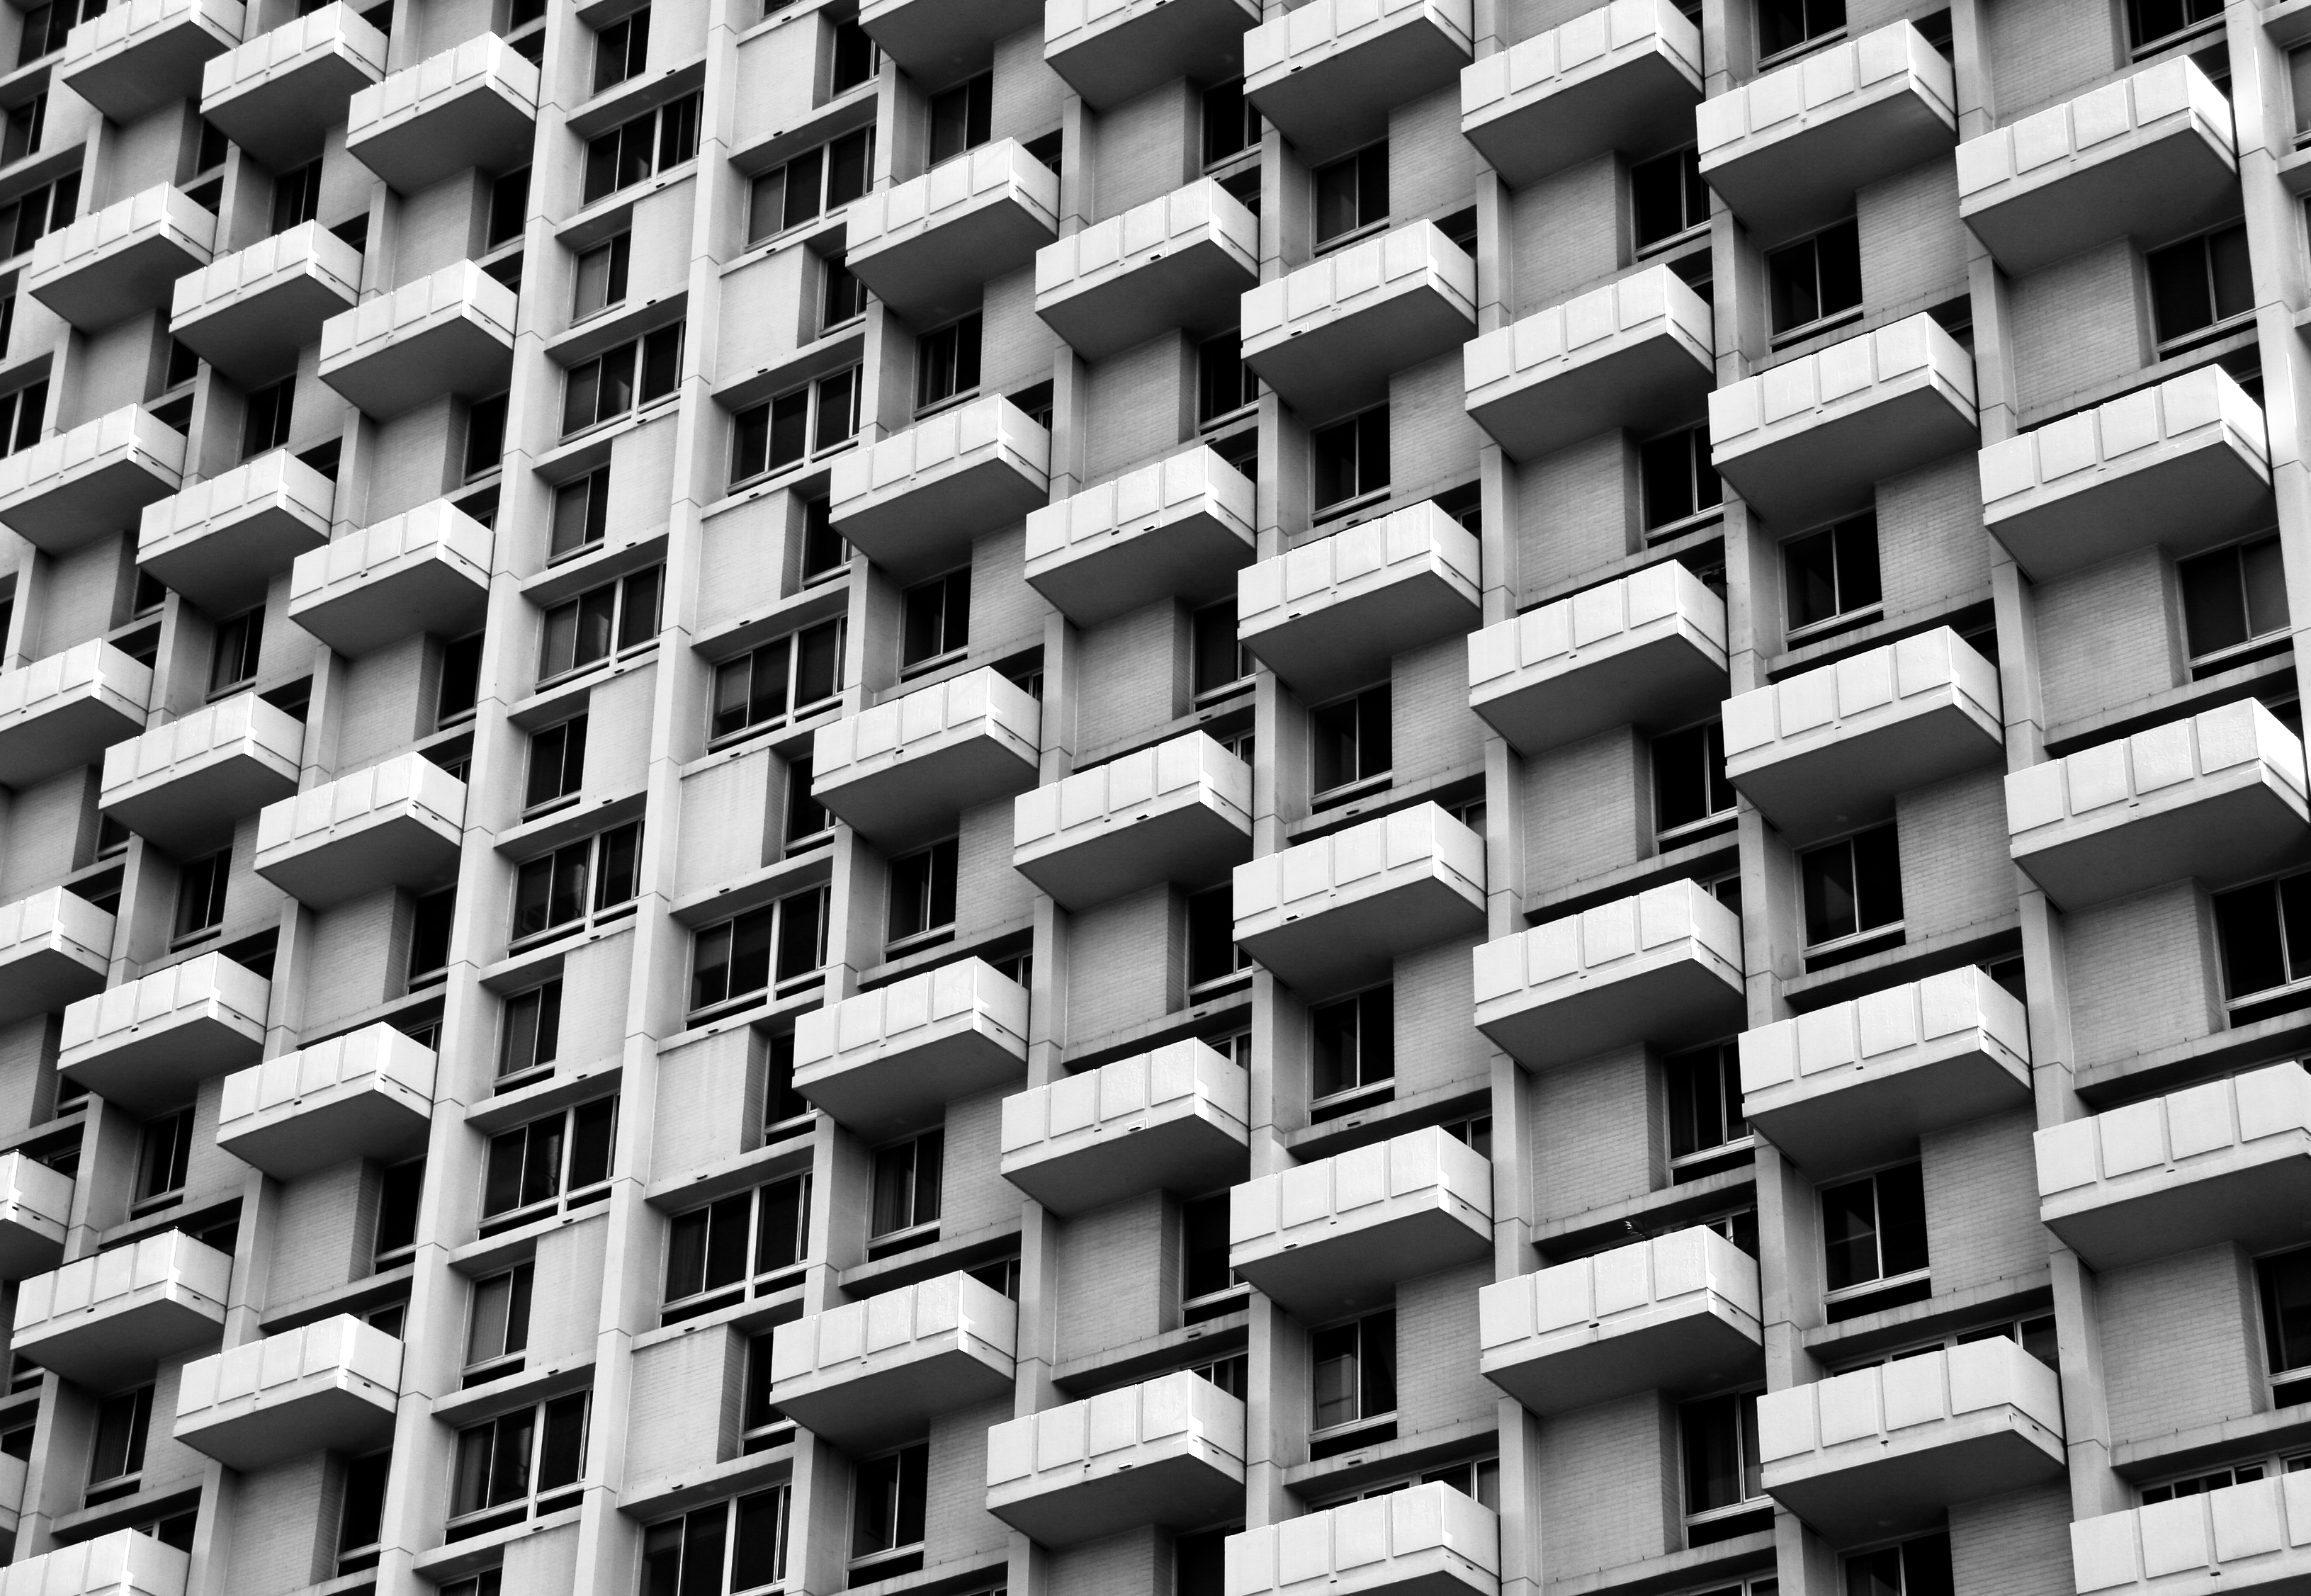 The facade of a building in Philadelphia. There are multiple windows with small balconies.